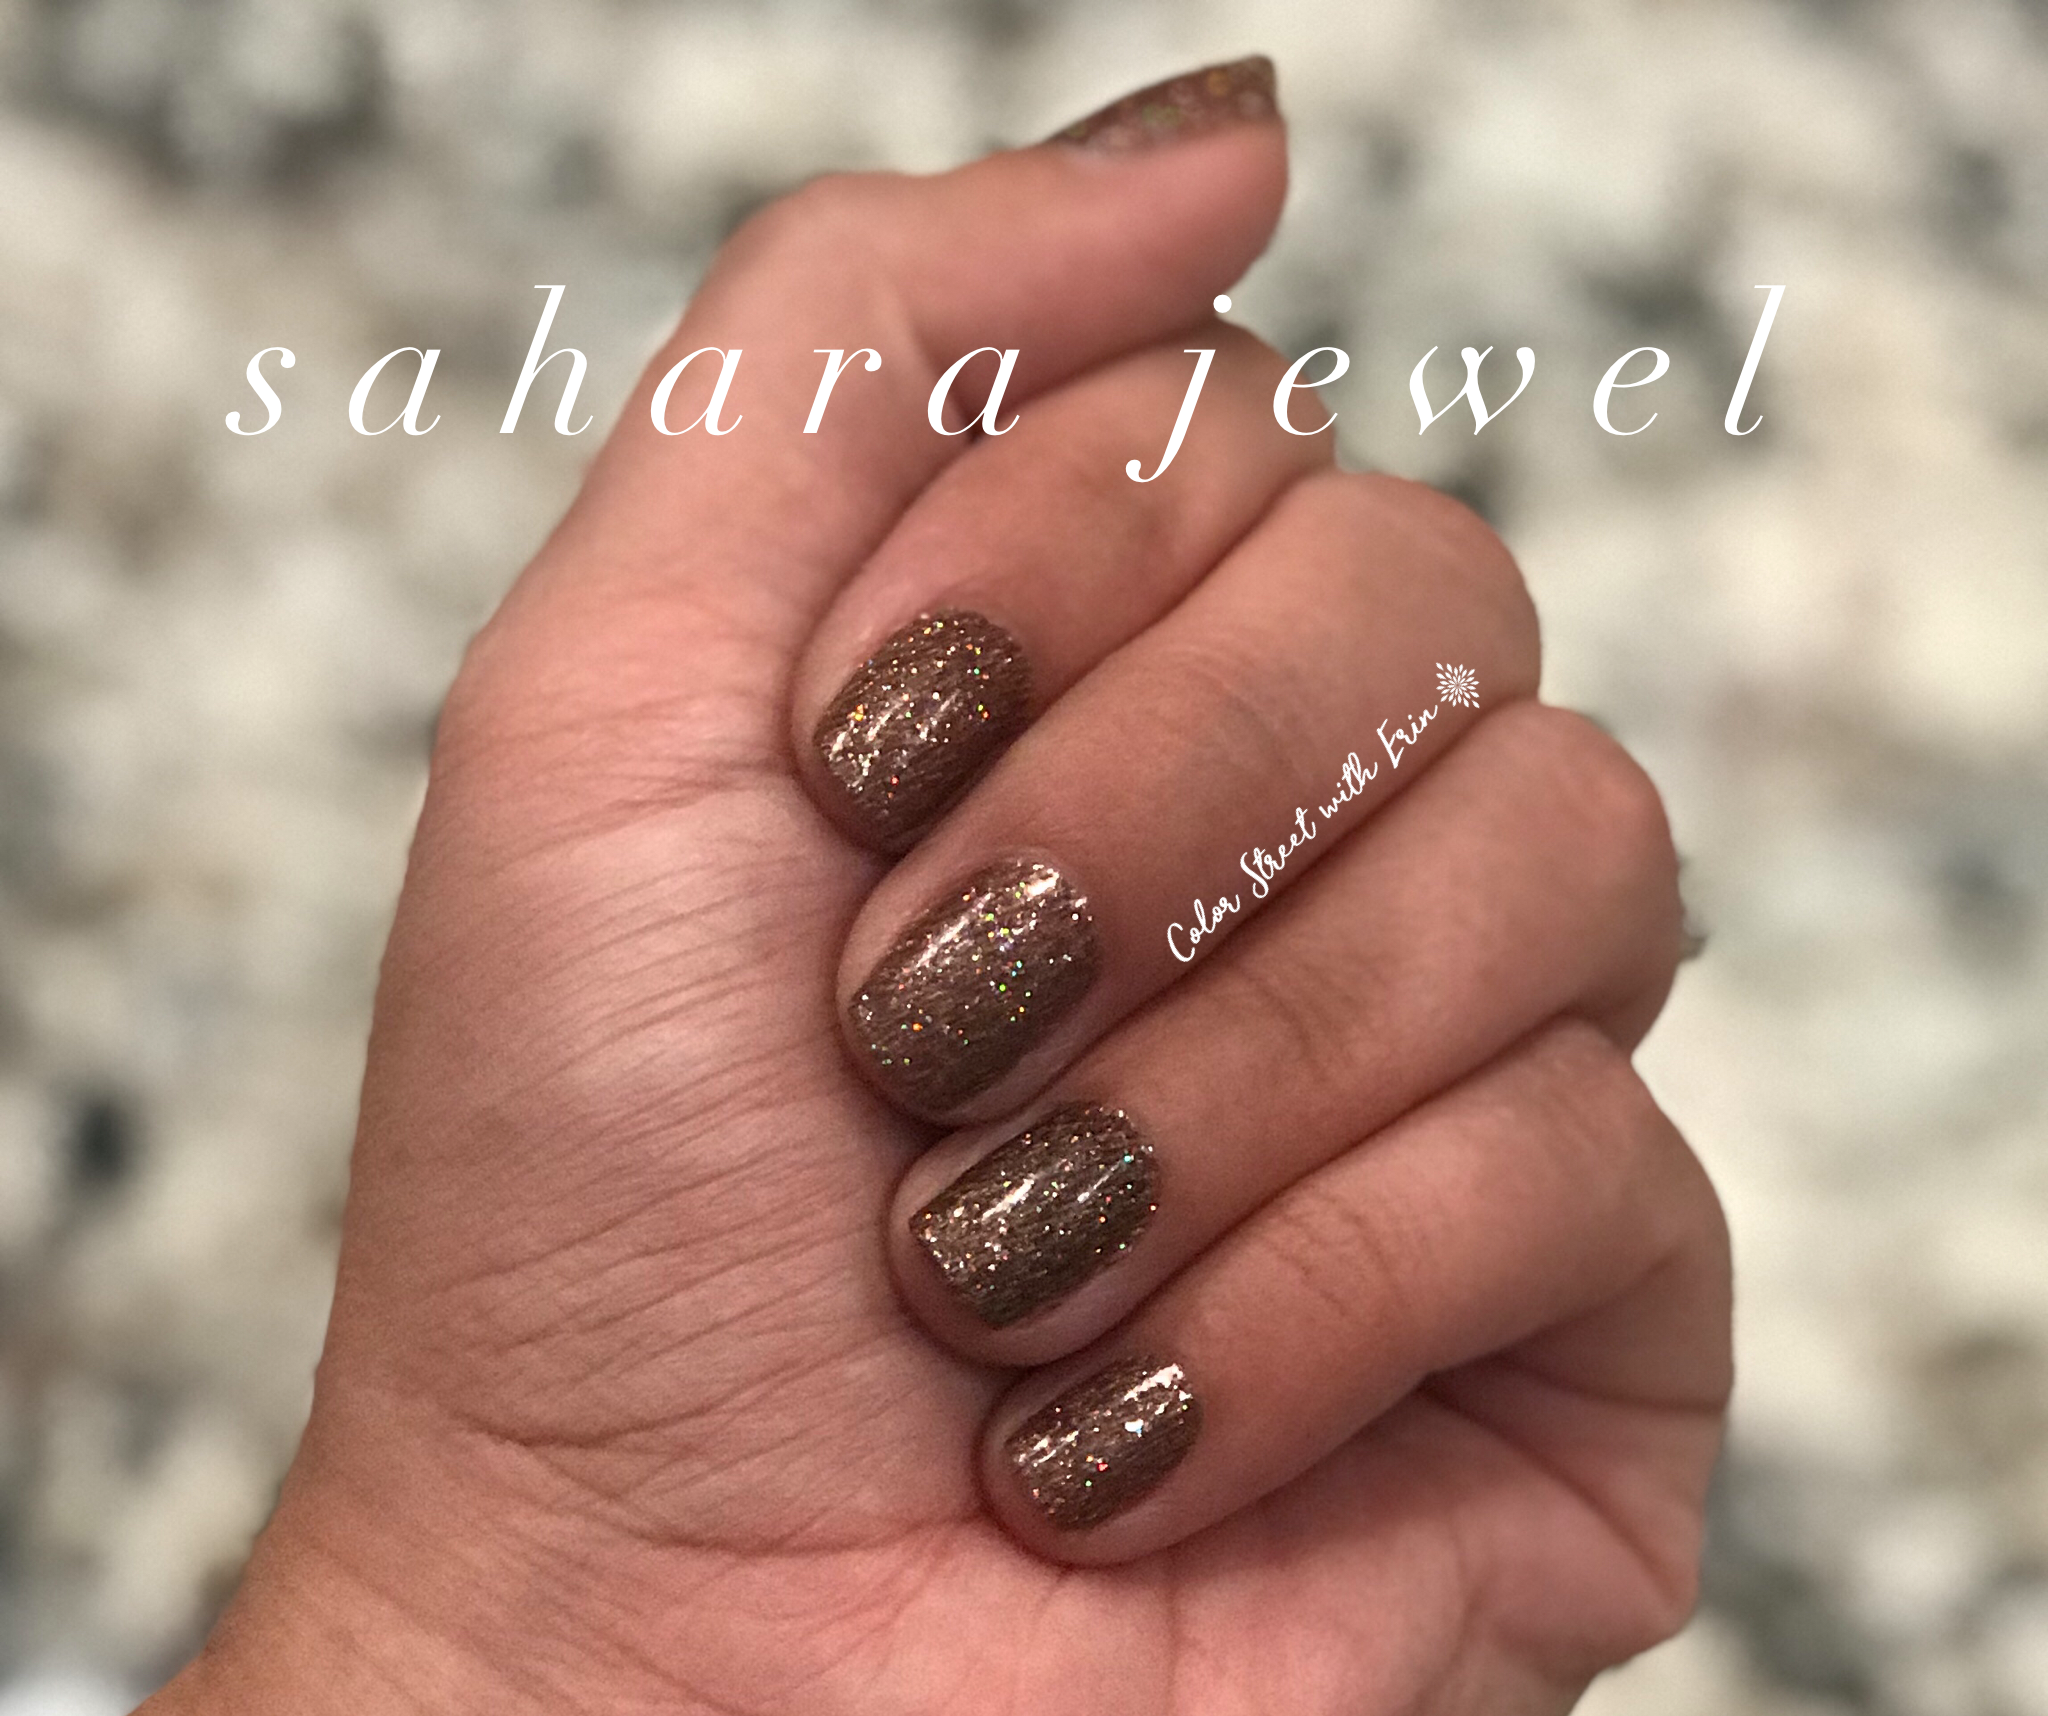 Sahara Jewel by Color Street is the perfect fall glitter nail polish ...